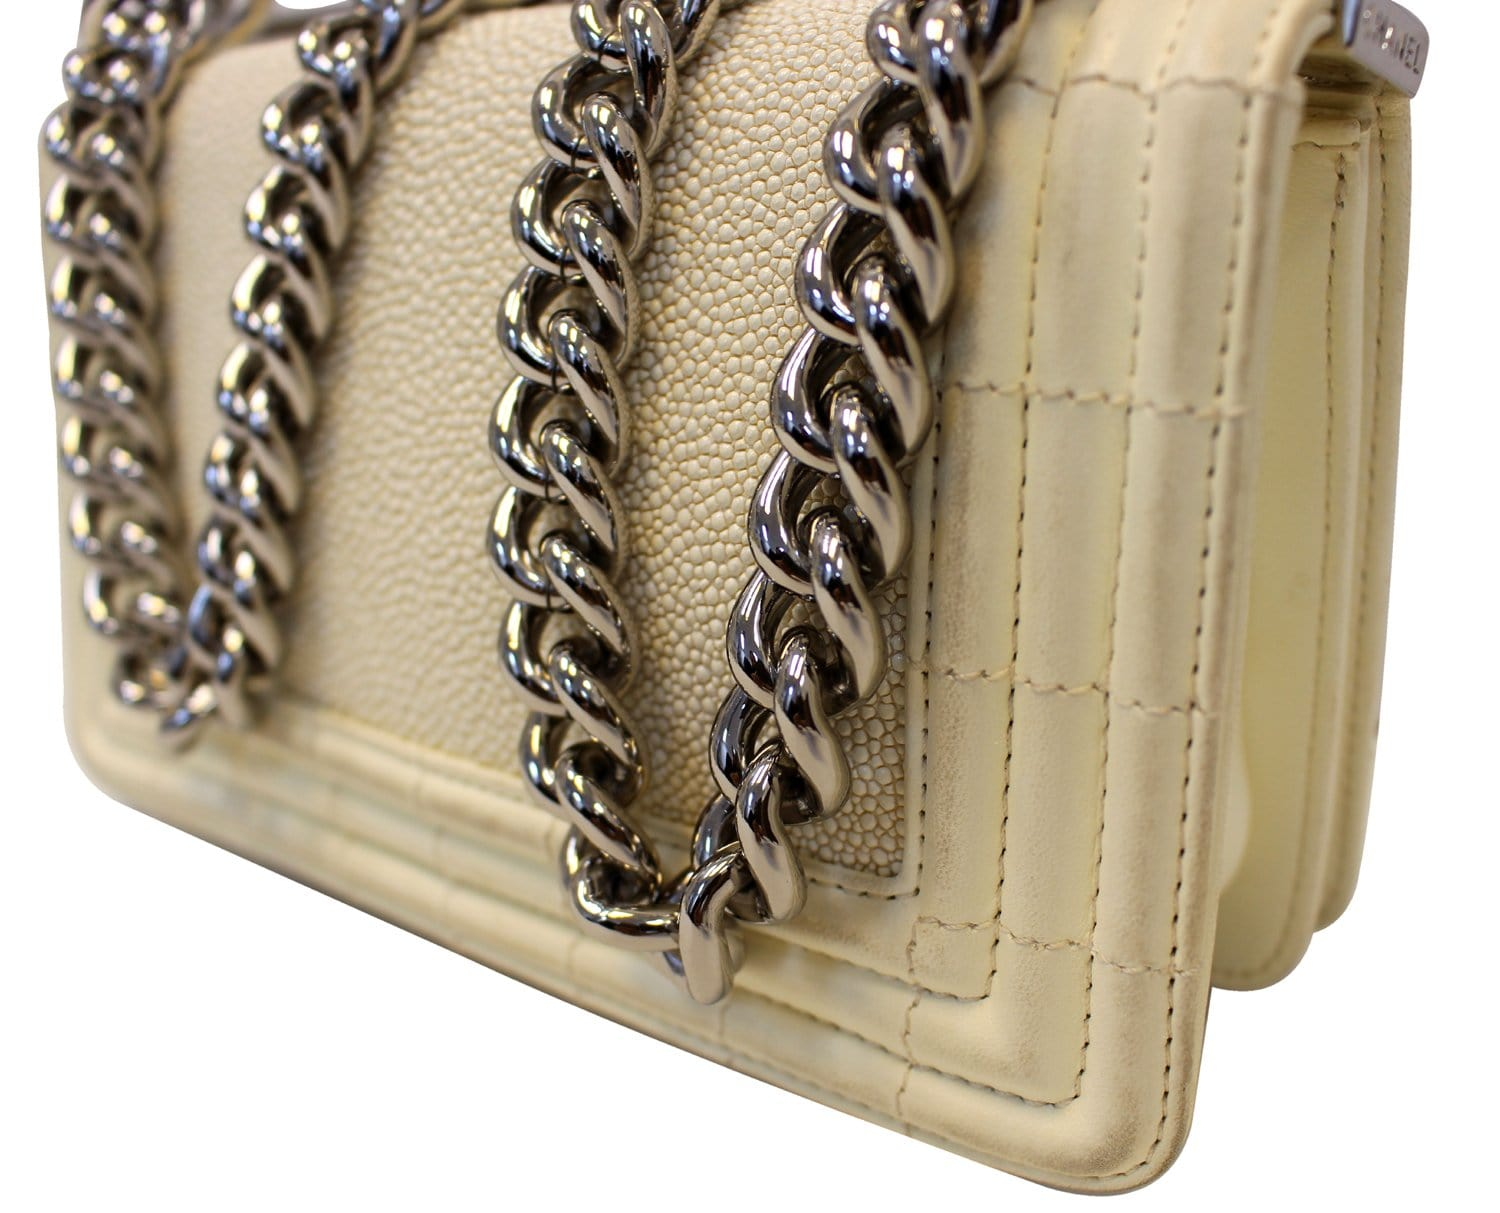 08024d41e1588 Chanel White Boy Stingray Leather small sample Crossbody Bag - Final Call